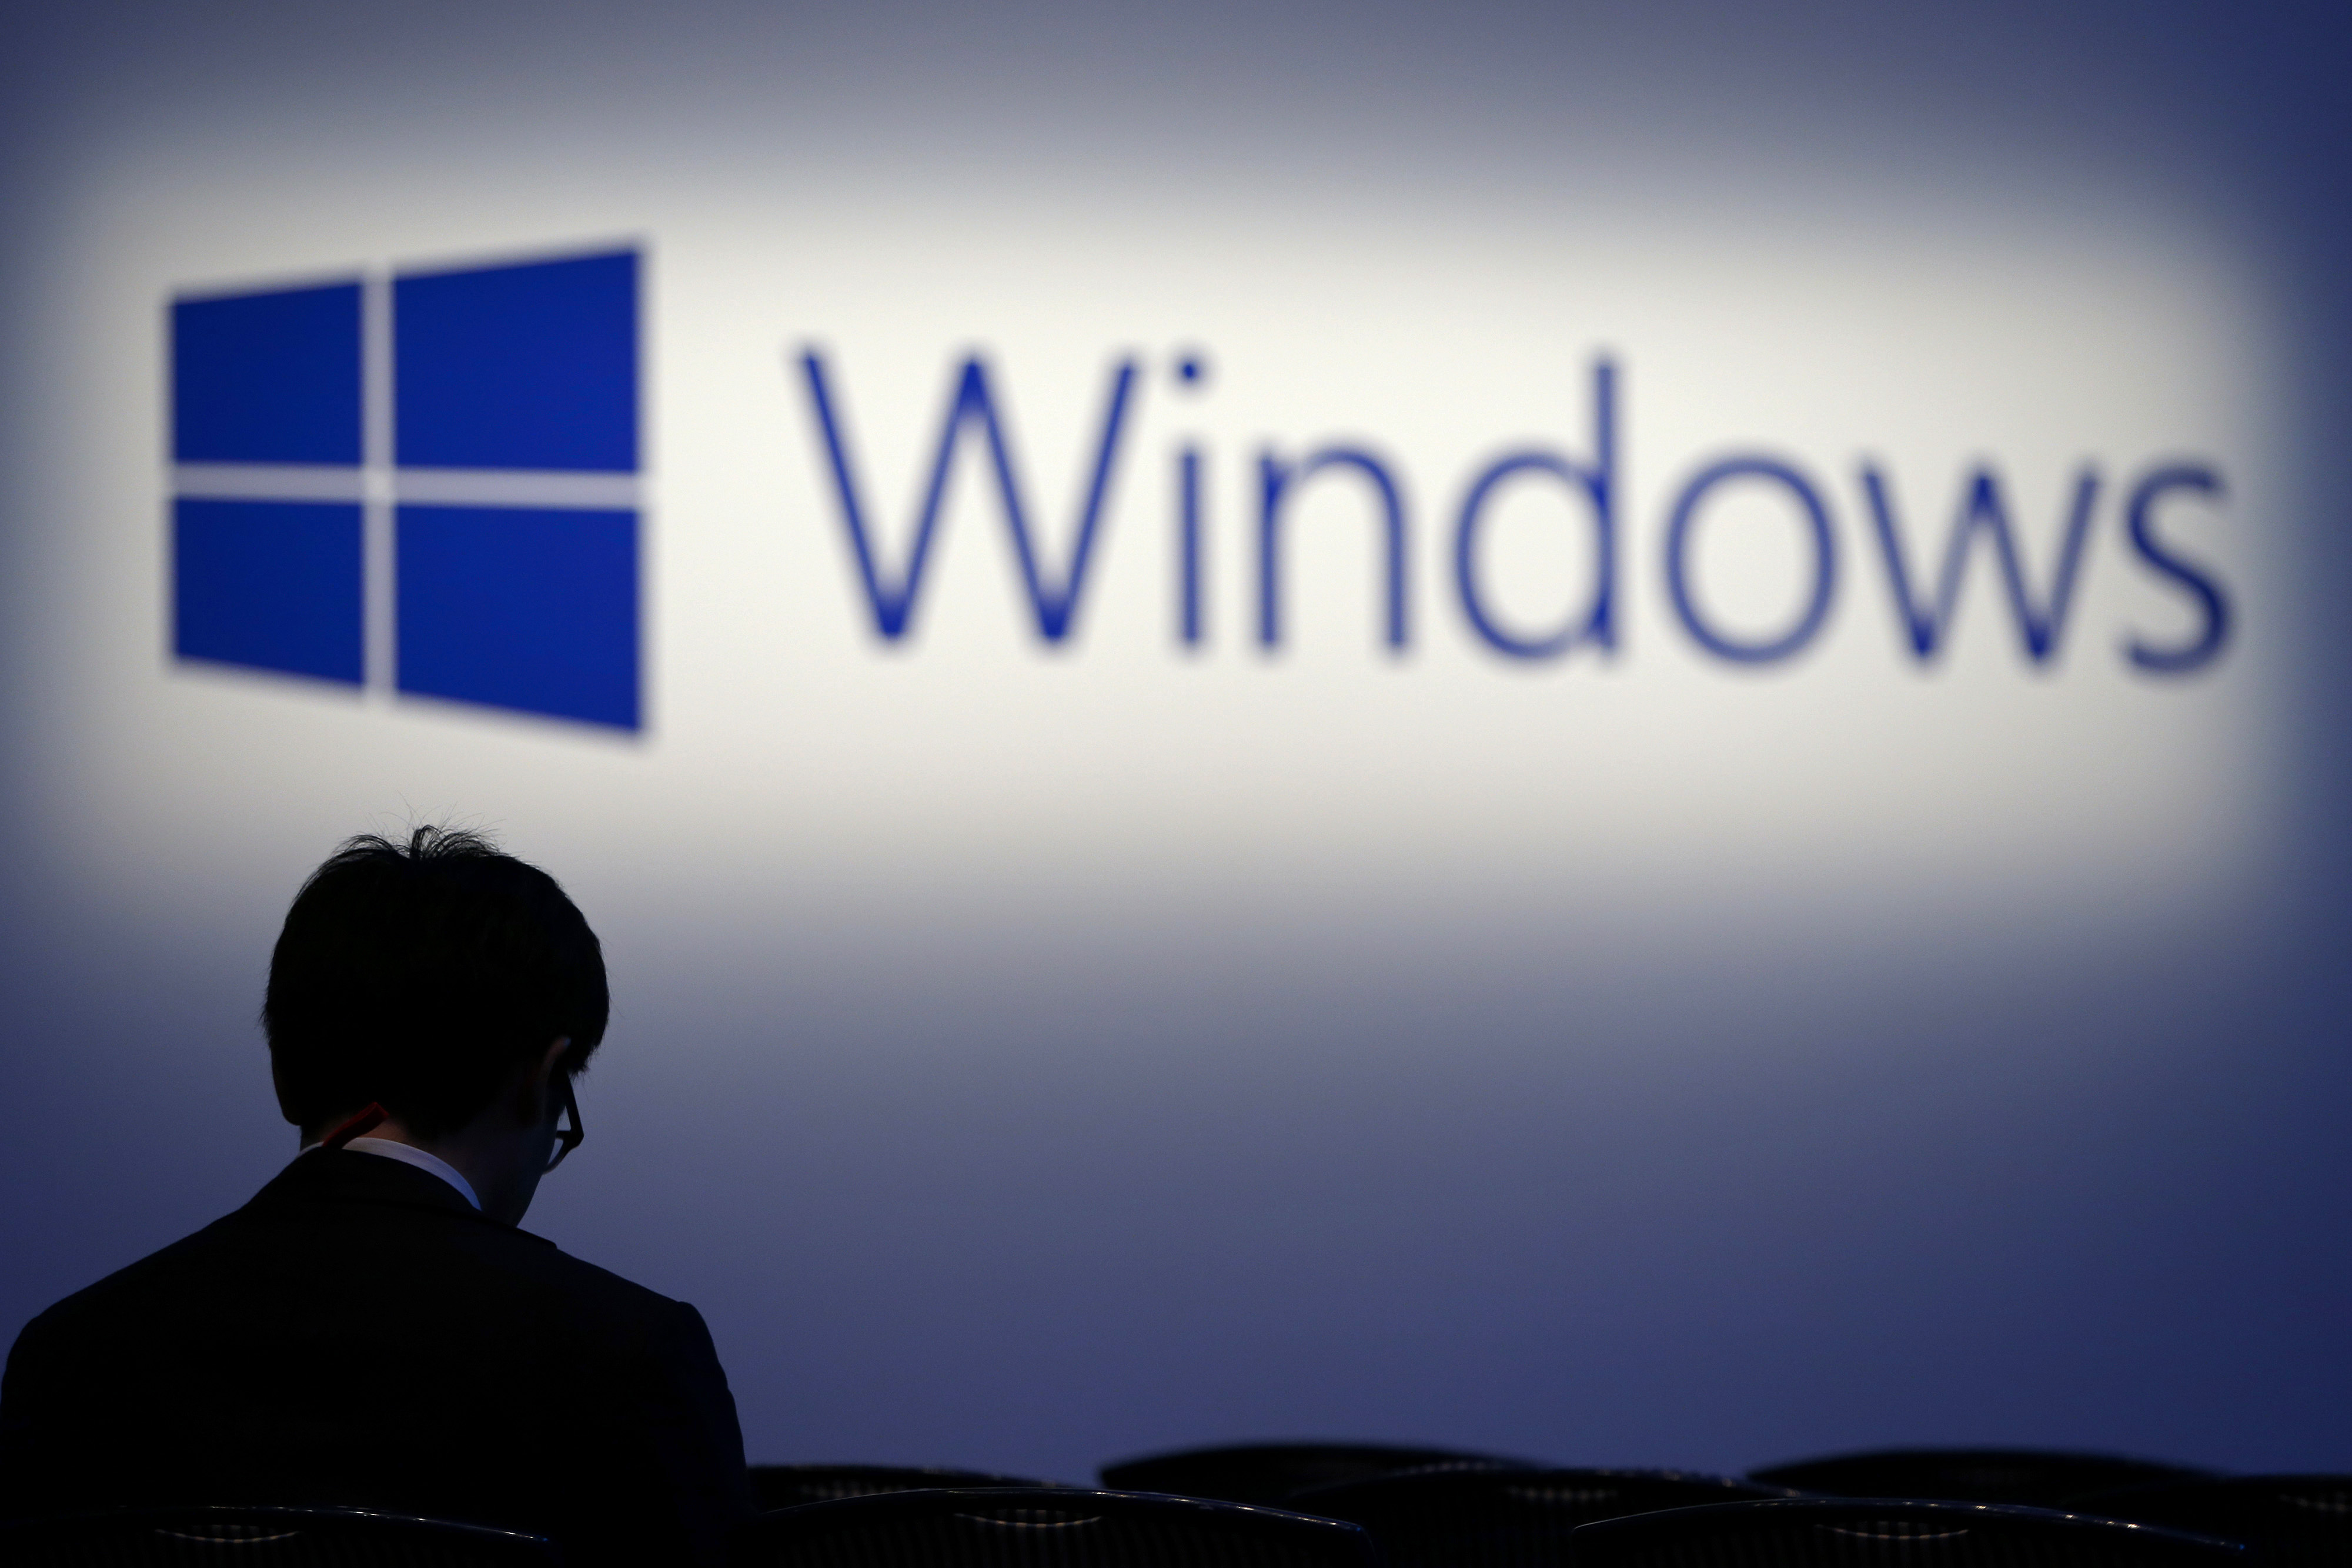 The logo for Microsoft Corp.'s Windows operating system is displayed at a launch event for the Windows 8.1 operating system in Tokyo, Japan, on Friday, Oct. 18, 2013.